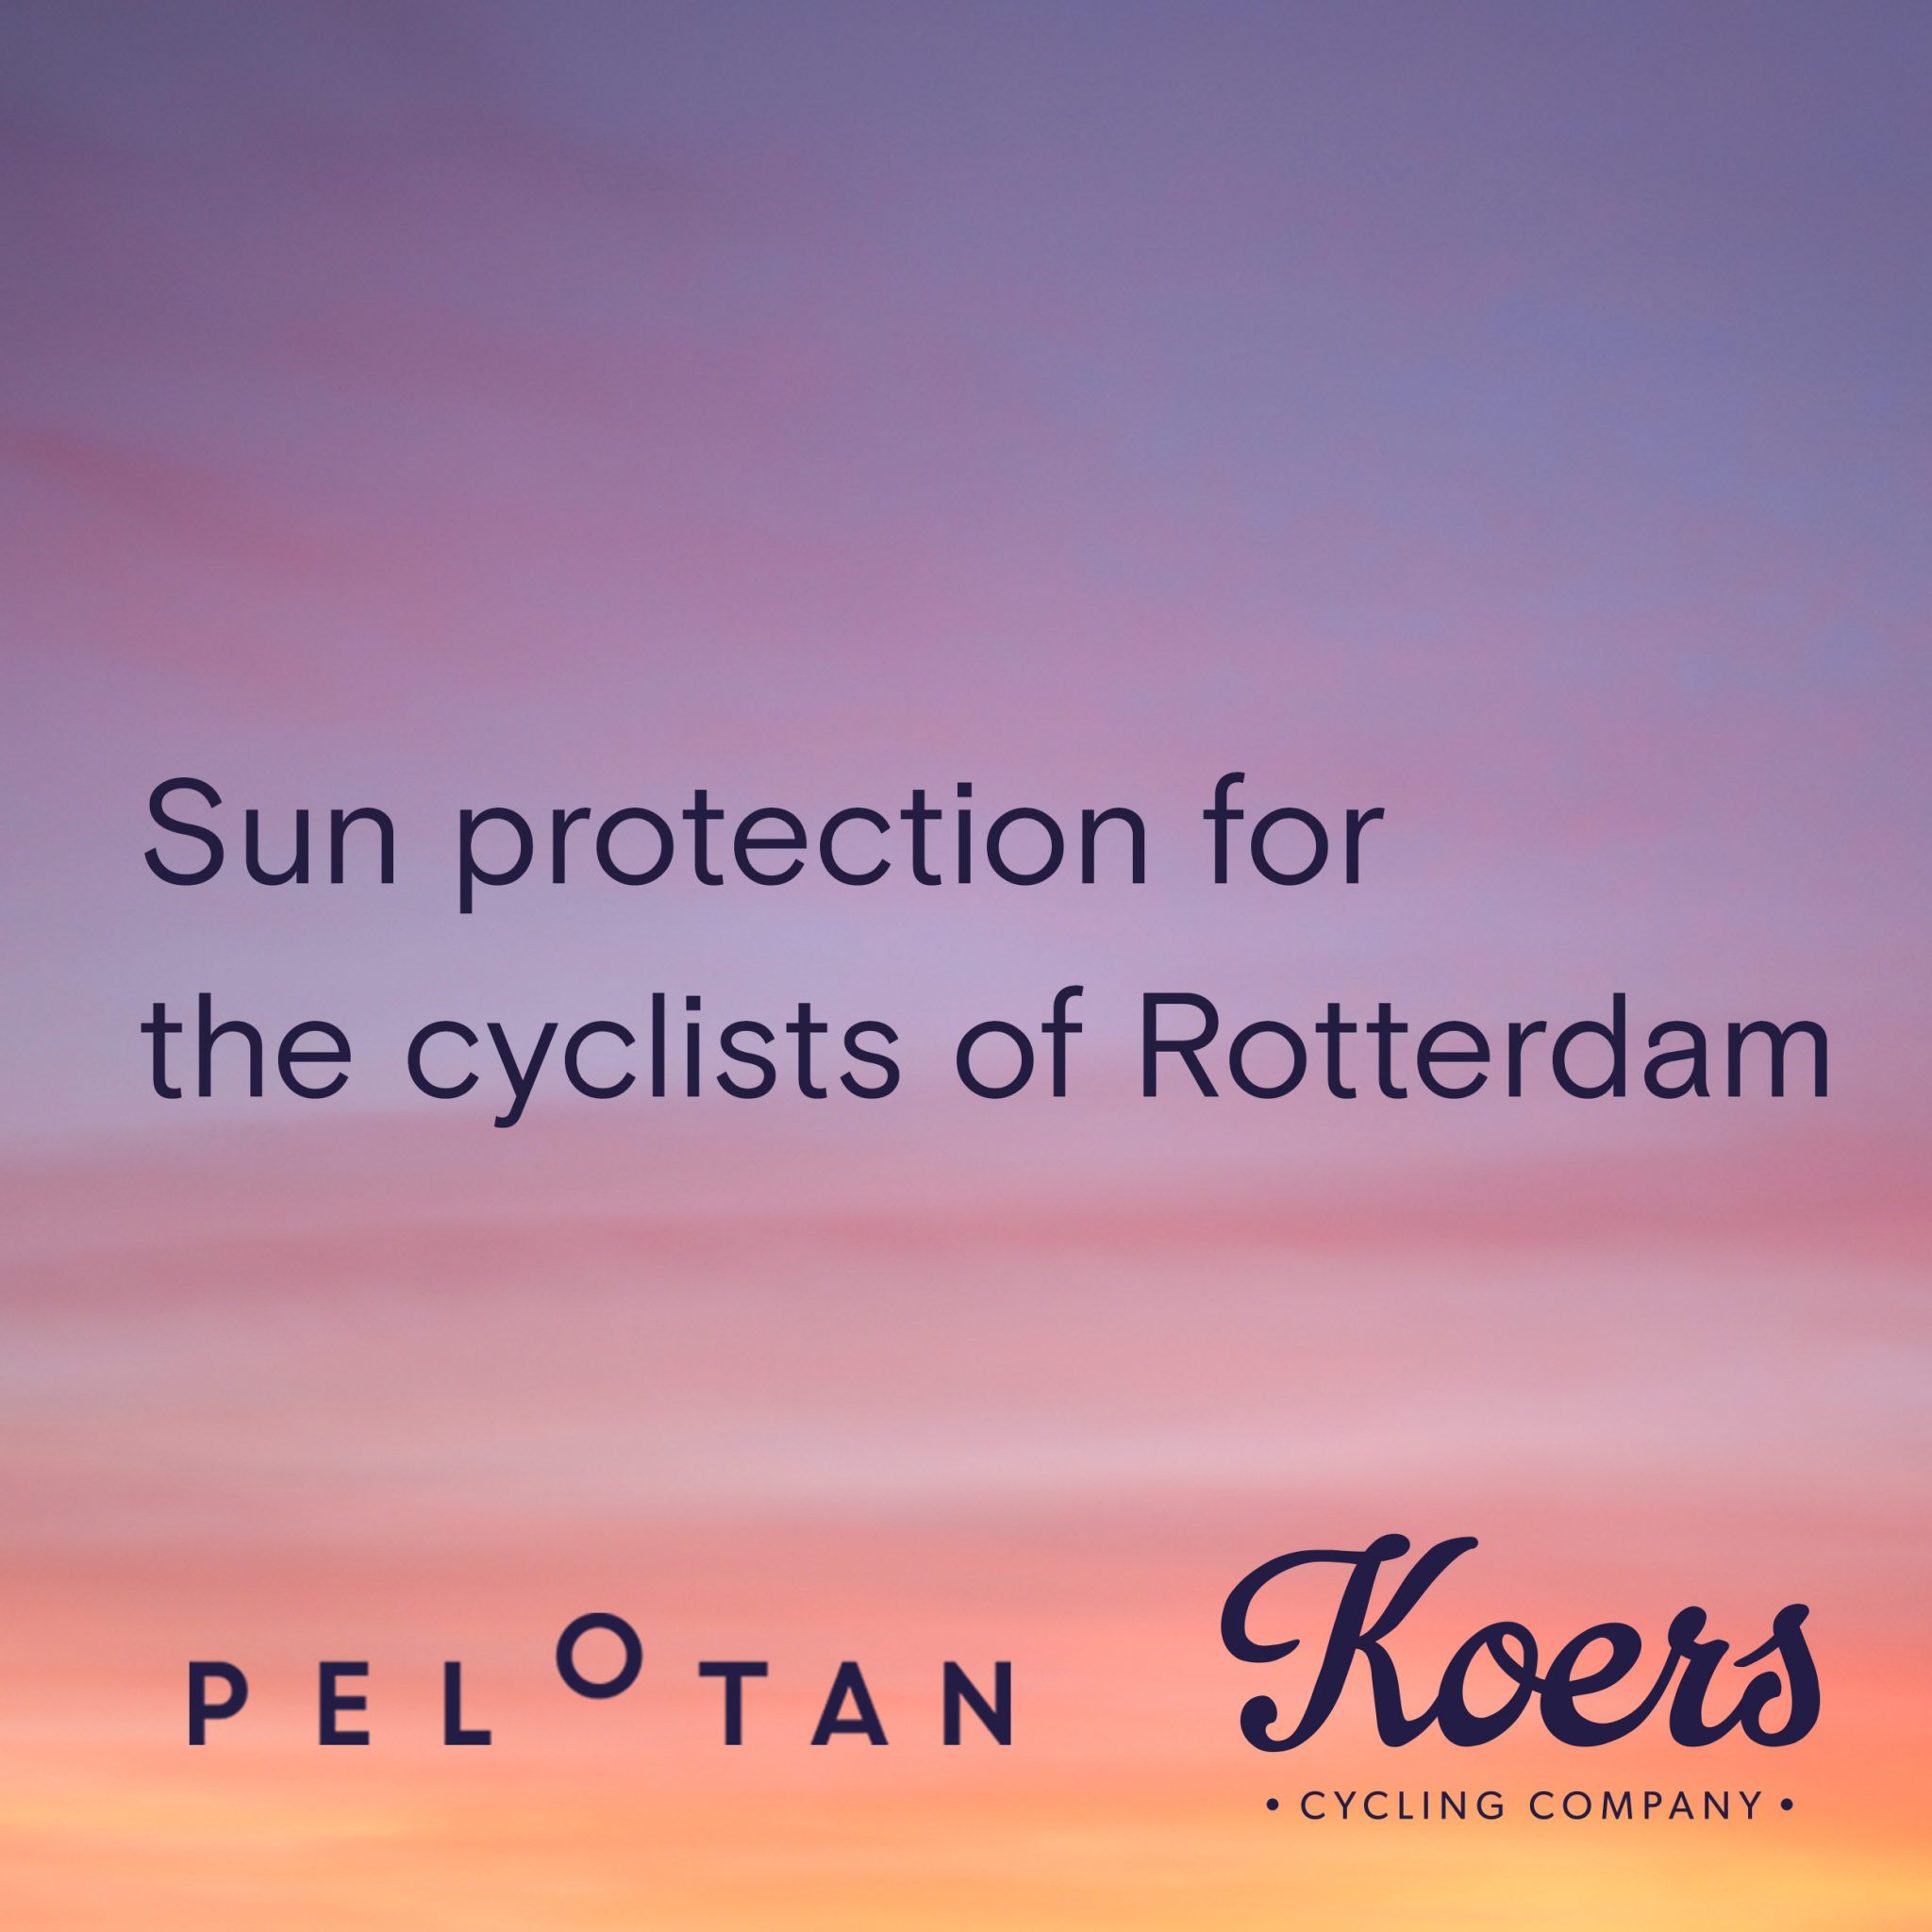 Pelotan Stockists Koers cycling company